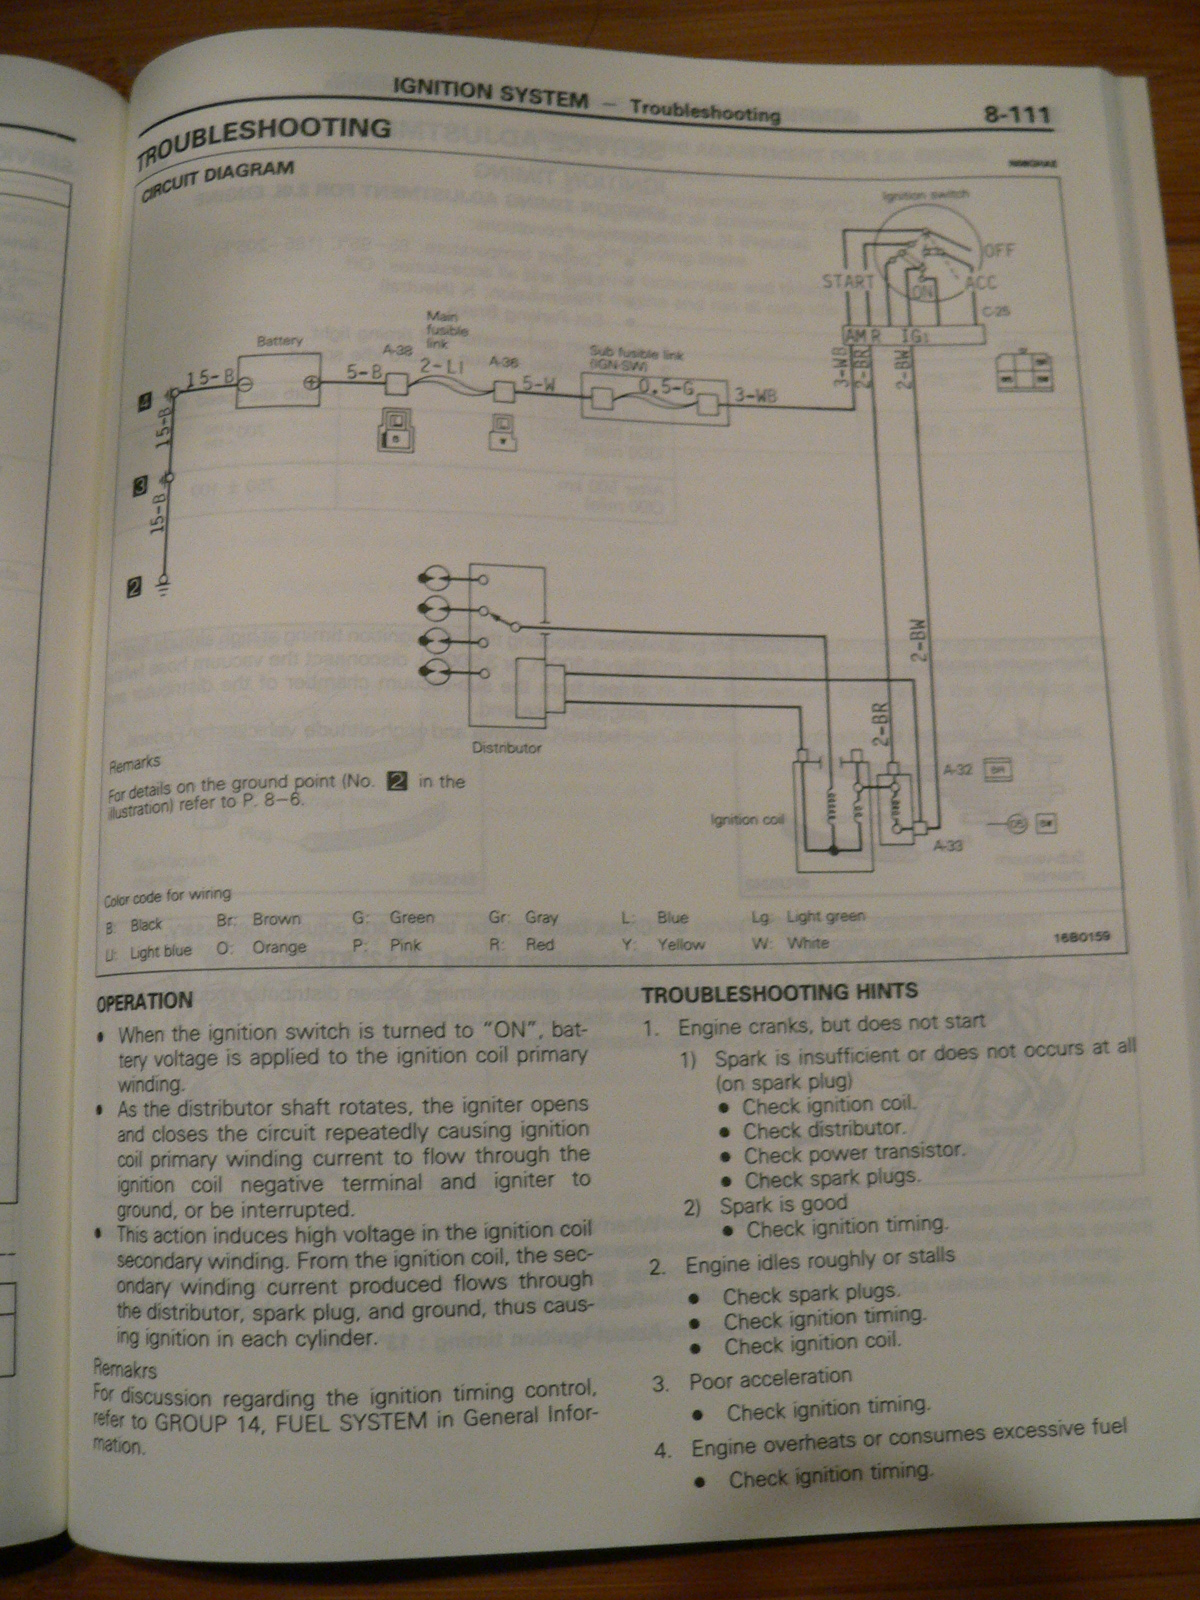 88 D50 Coil Wiring Just Plain Ol Bs Diagram For Caravan Ignition System Posted Image